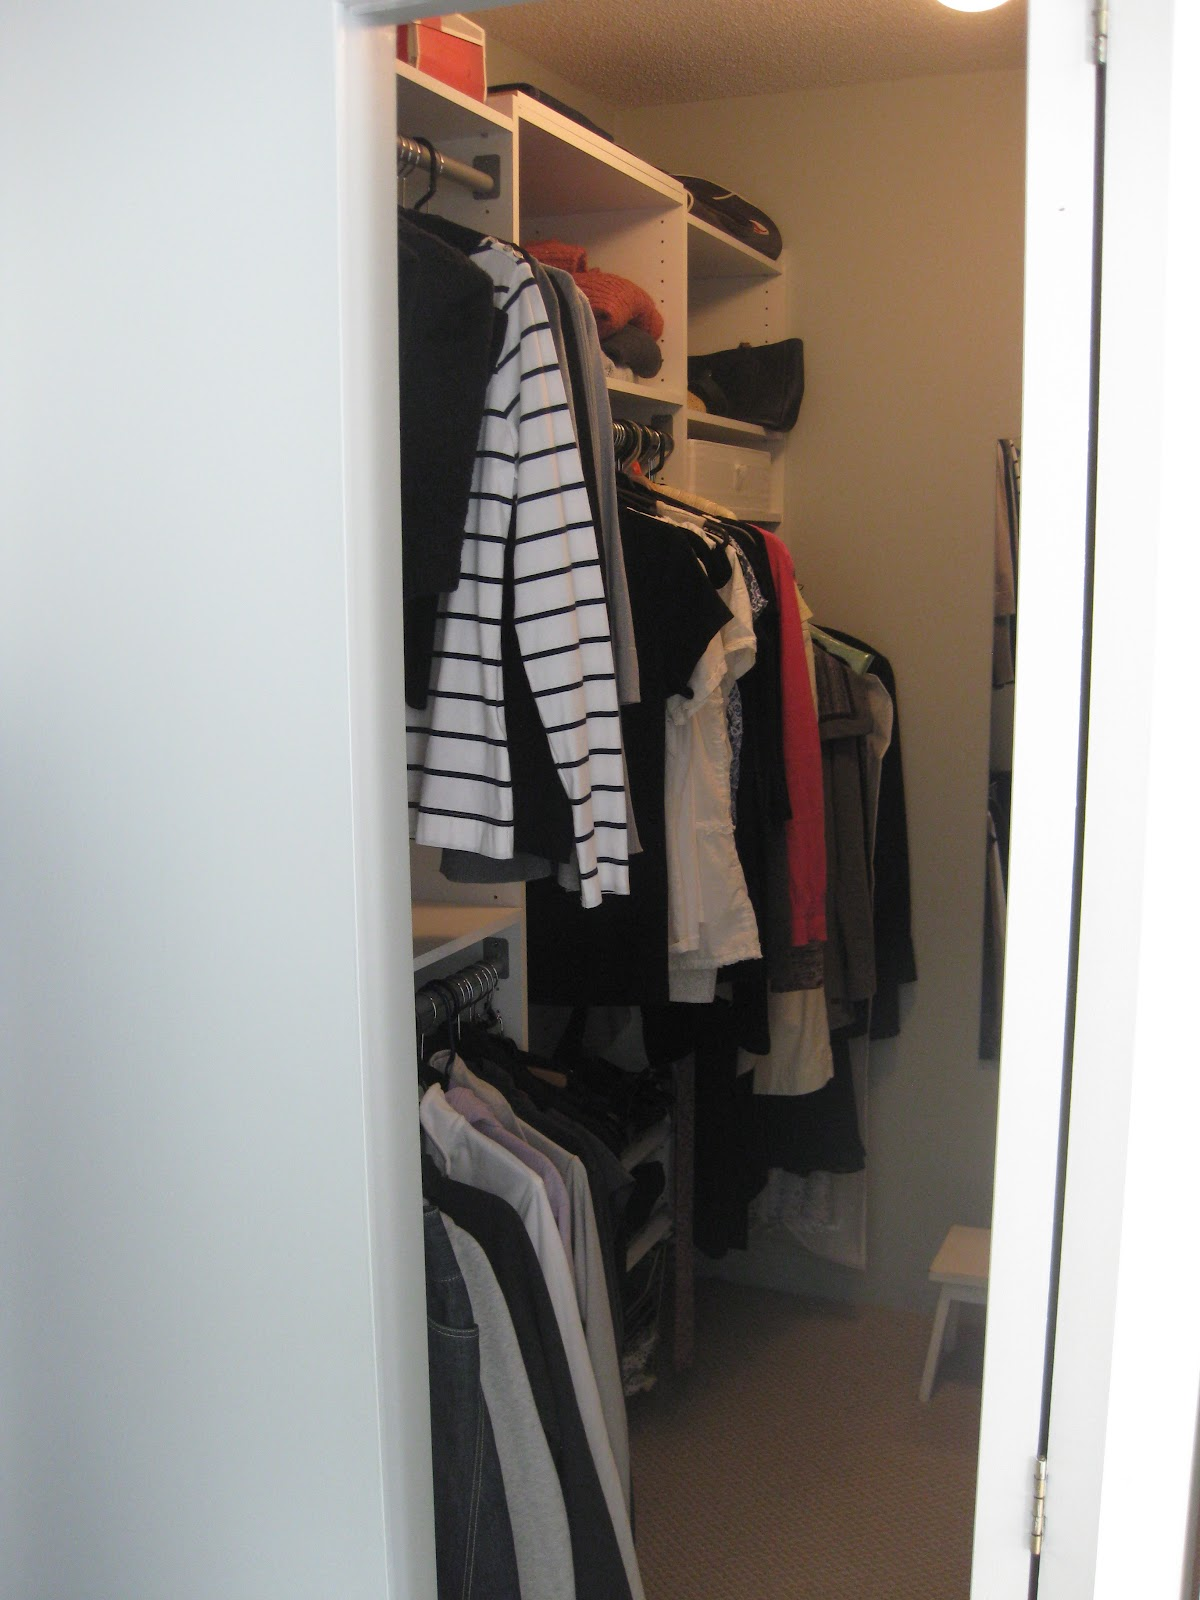 Van Breugel Design Martha Stewart Closet Organizer Review